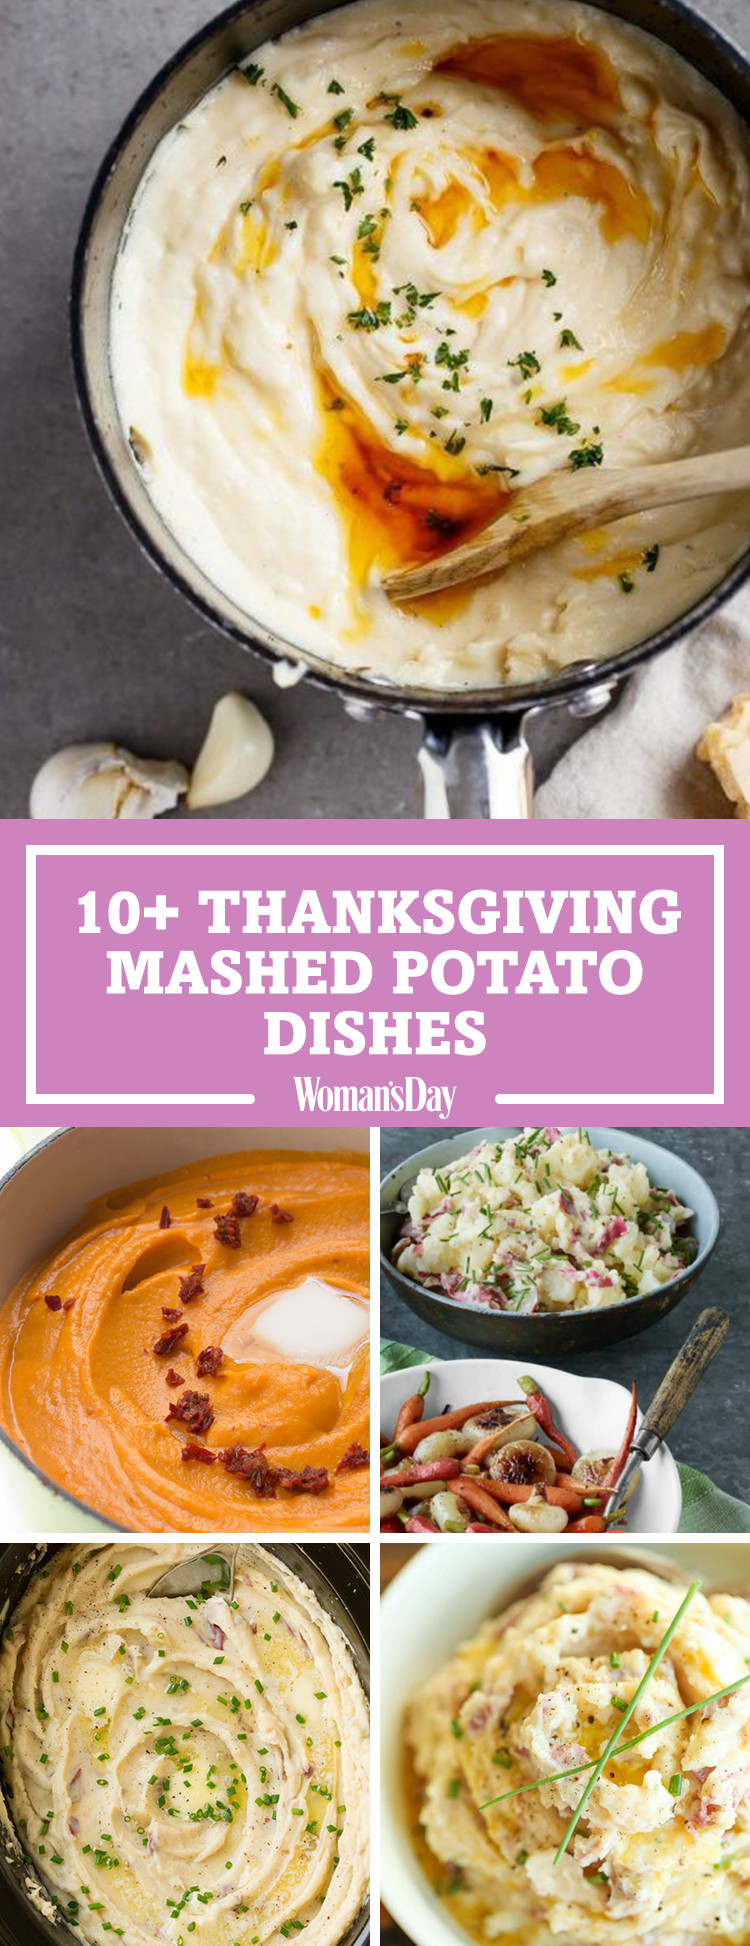 Thanksgiving Mashed Potatoes  14 Best Mashed Potato Recipes How to Make Mashed